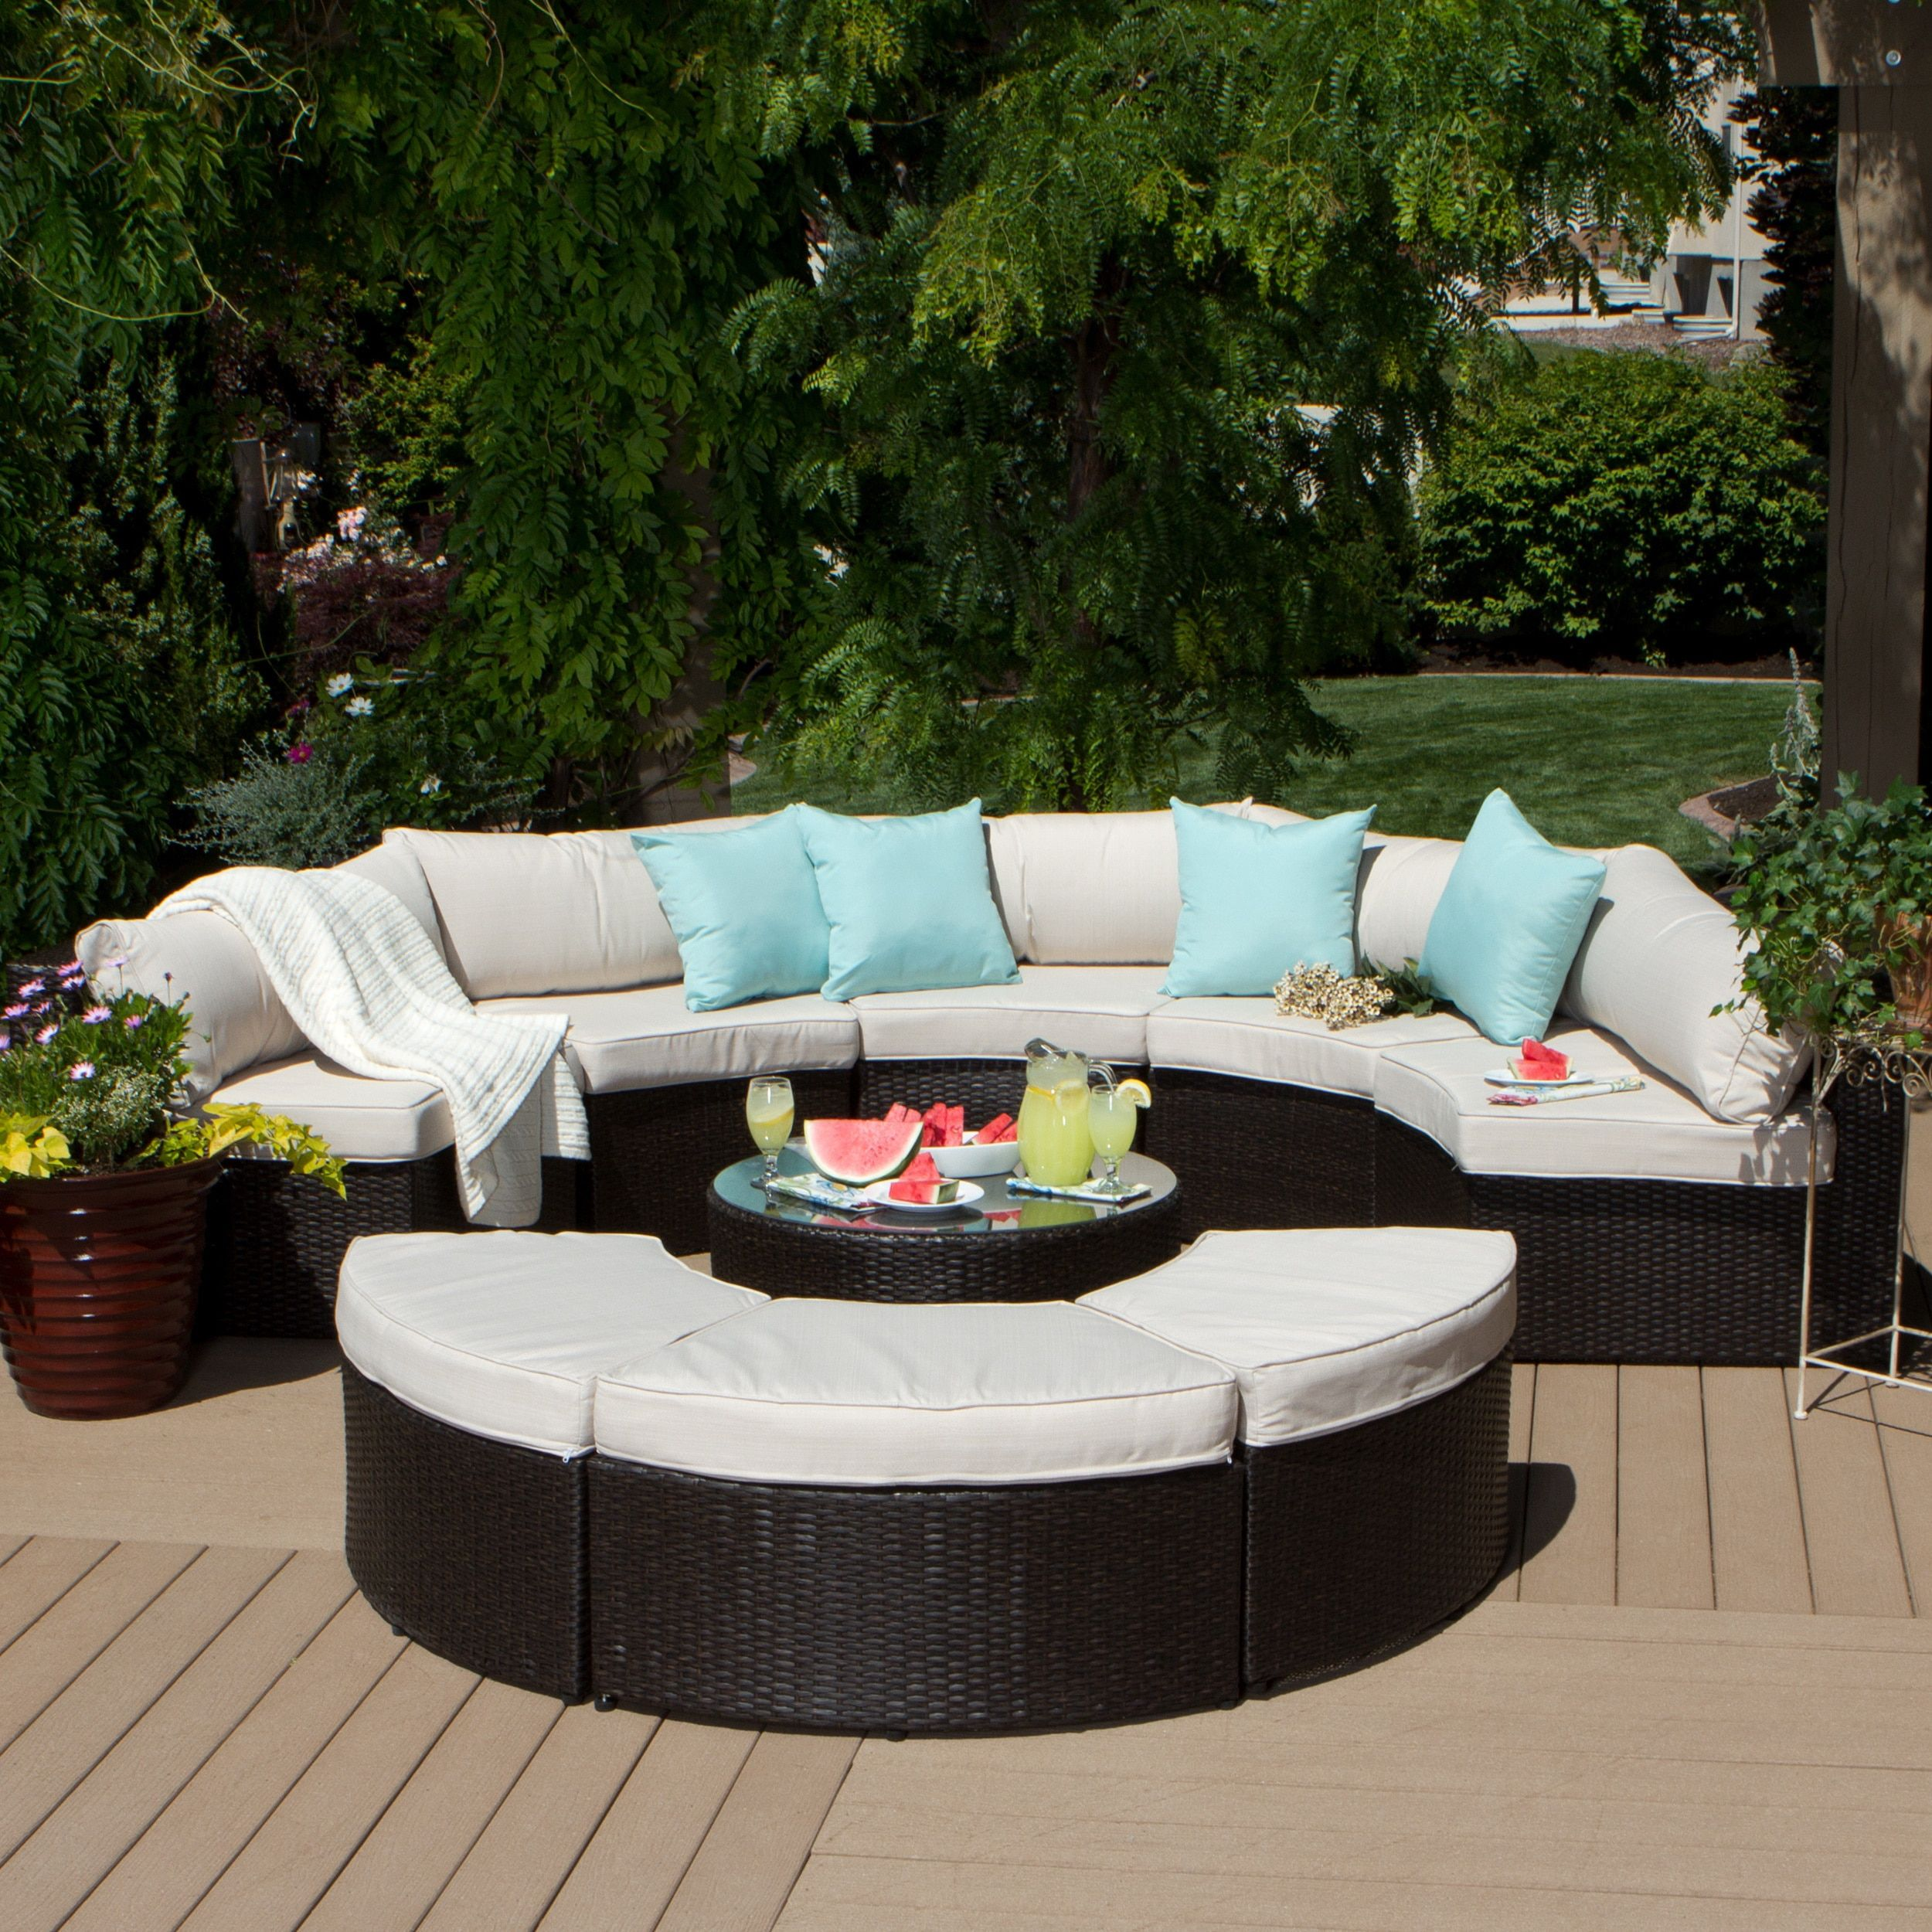 Havenside Home Isla 9 Piece Outdoor Sectional Patio Furniture Deals Outdoor Patio Couch Patio Deck Furniture